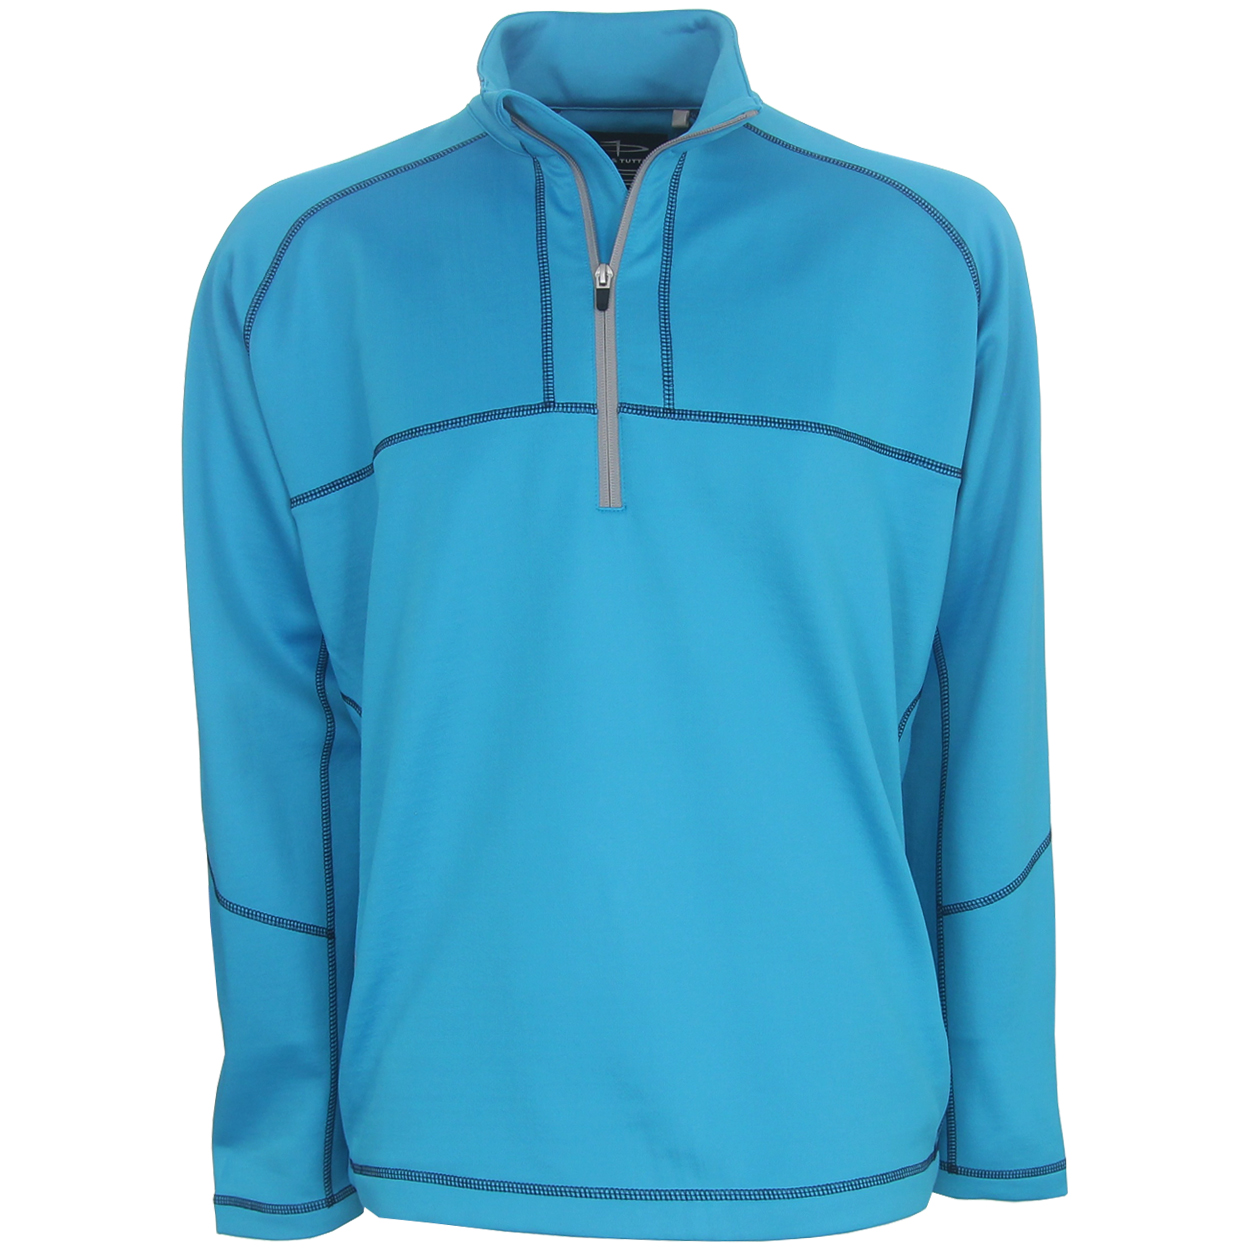 Page Tuttle Contrast Stitch 1 4 Zip Golf Pullover